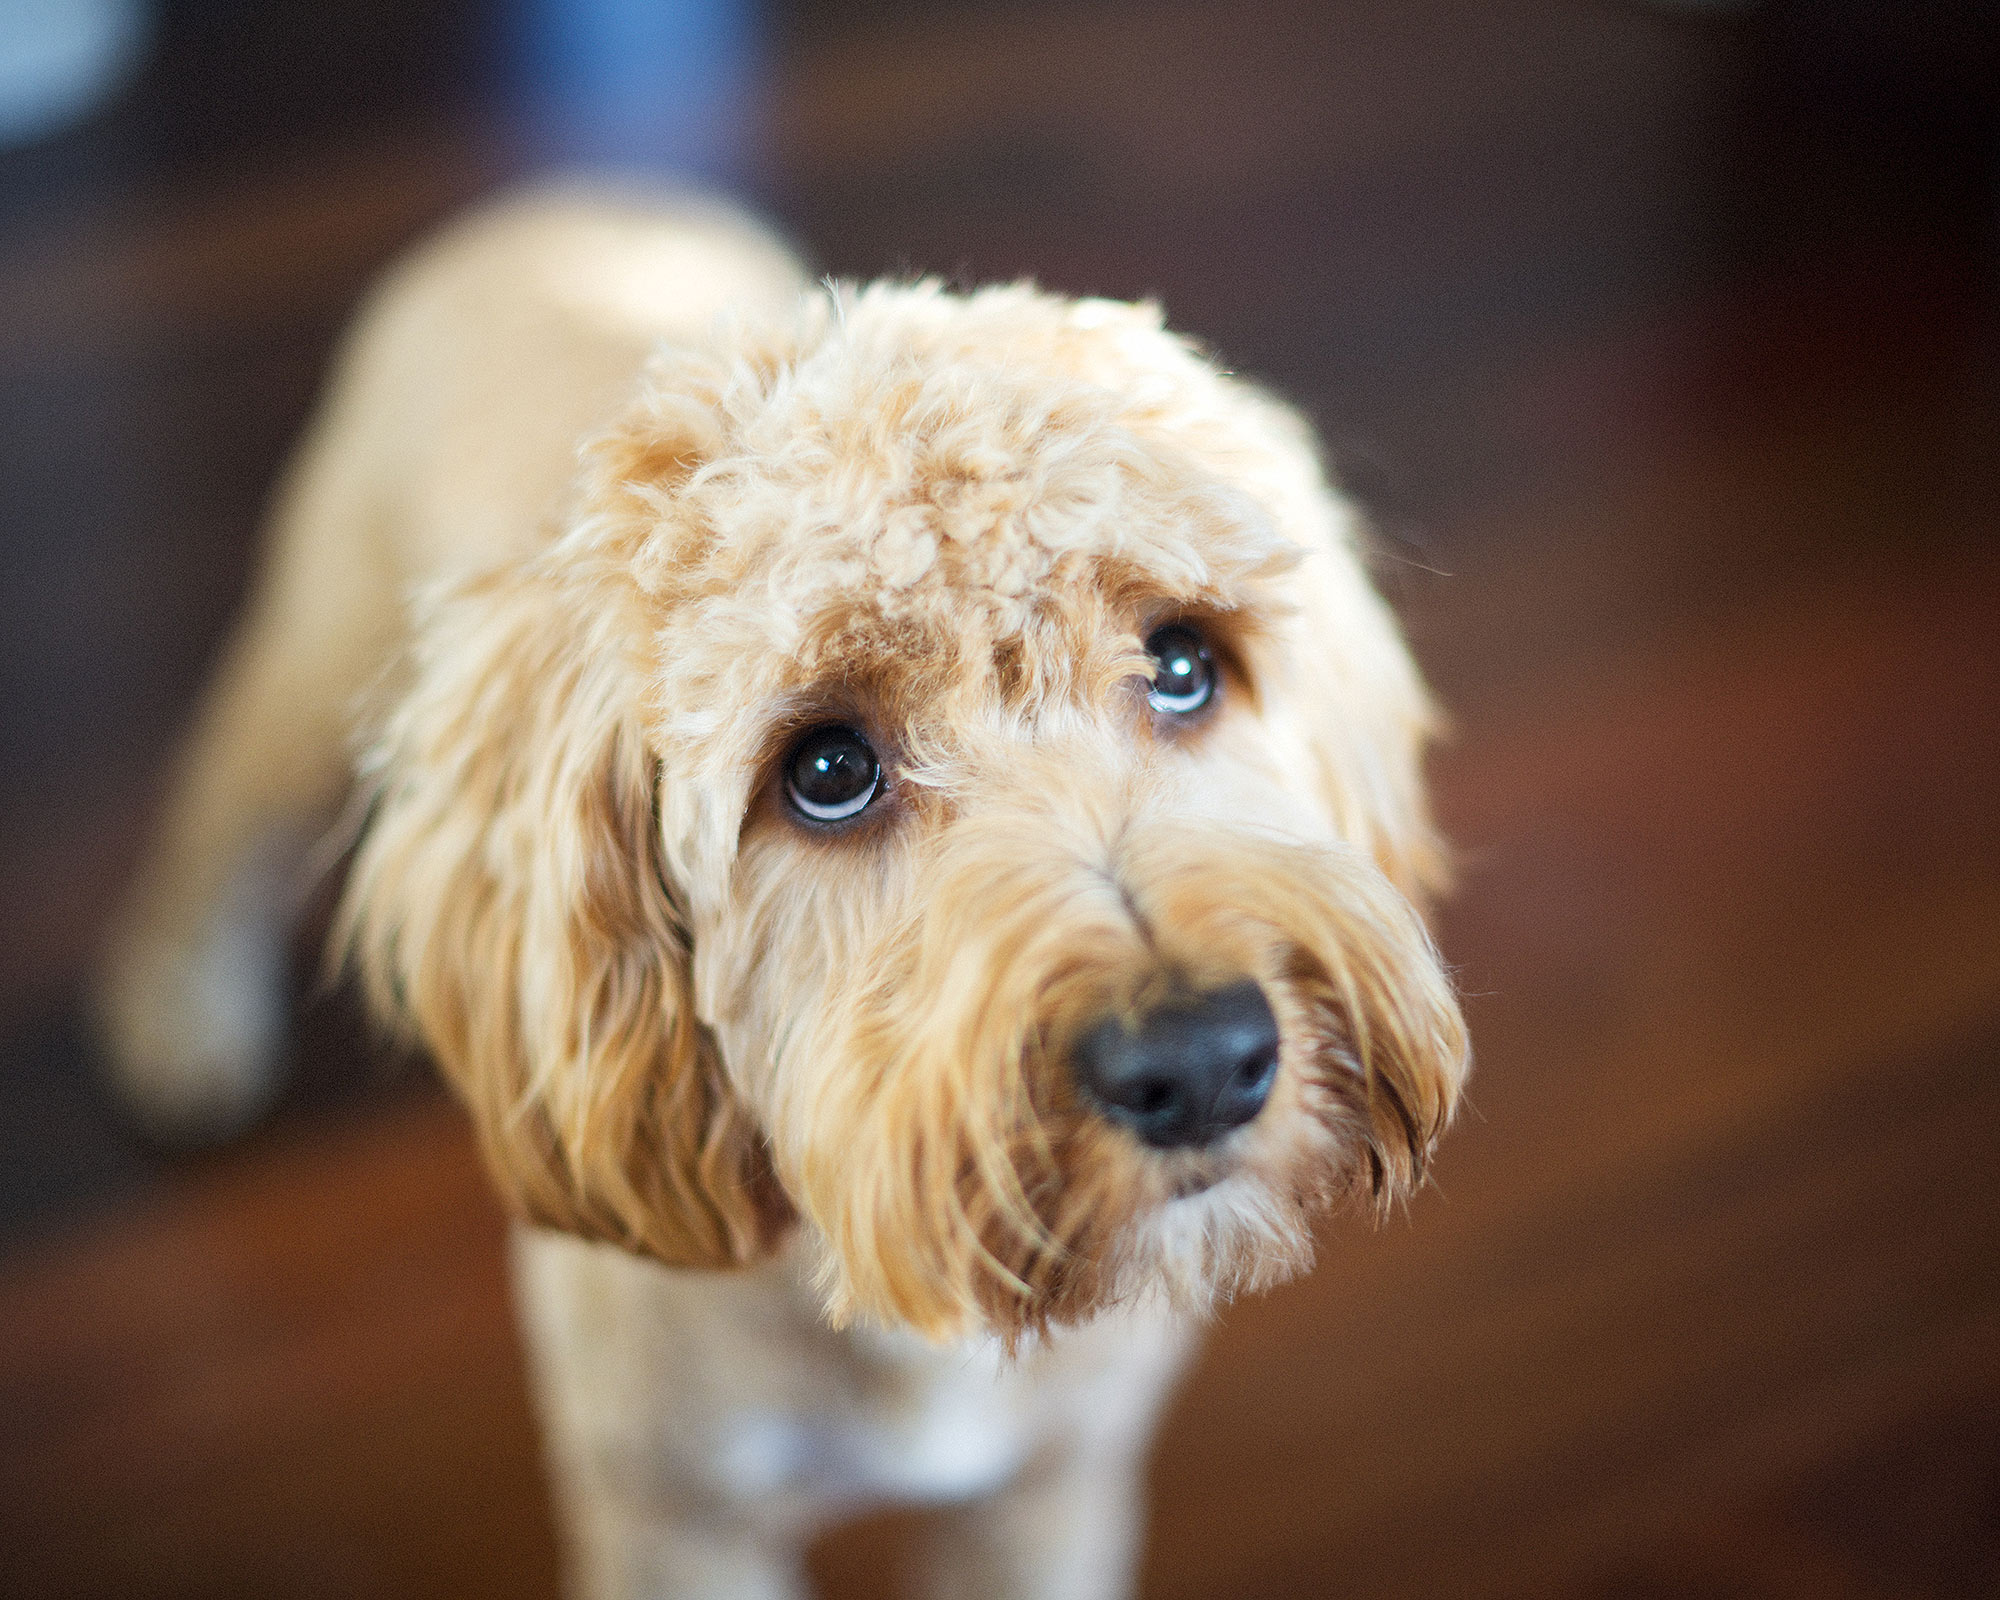 Science Has Unveiled Why 'Guilty' Dogs Make That Adorably Sad Face